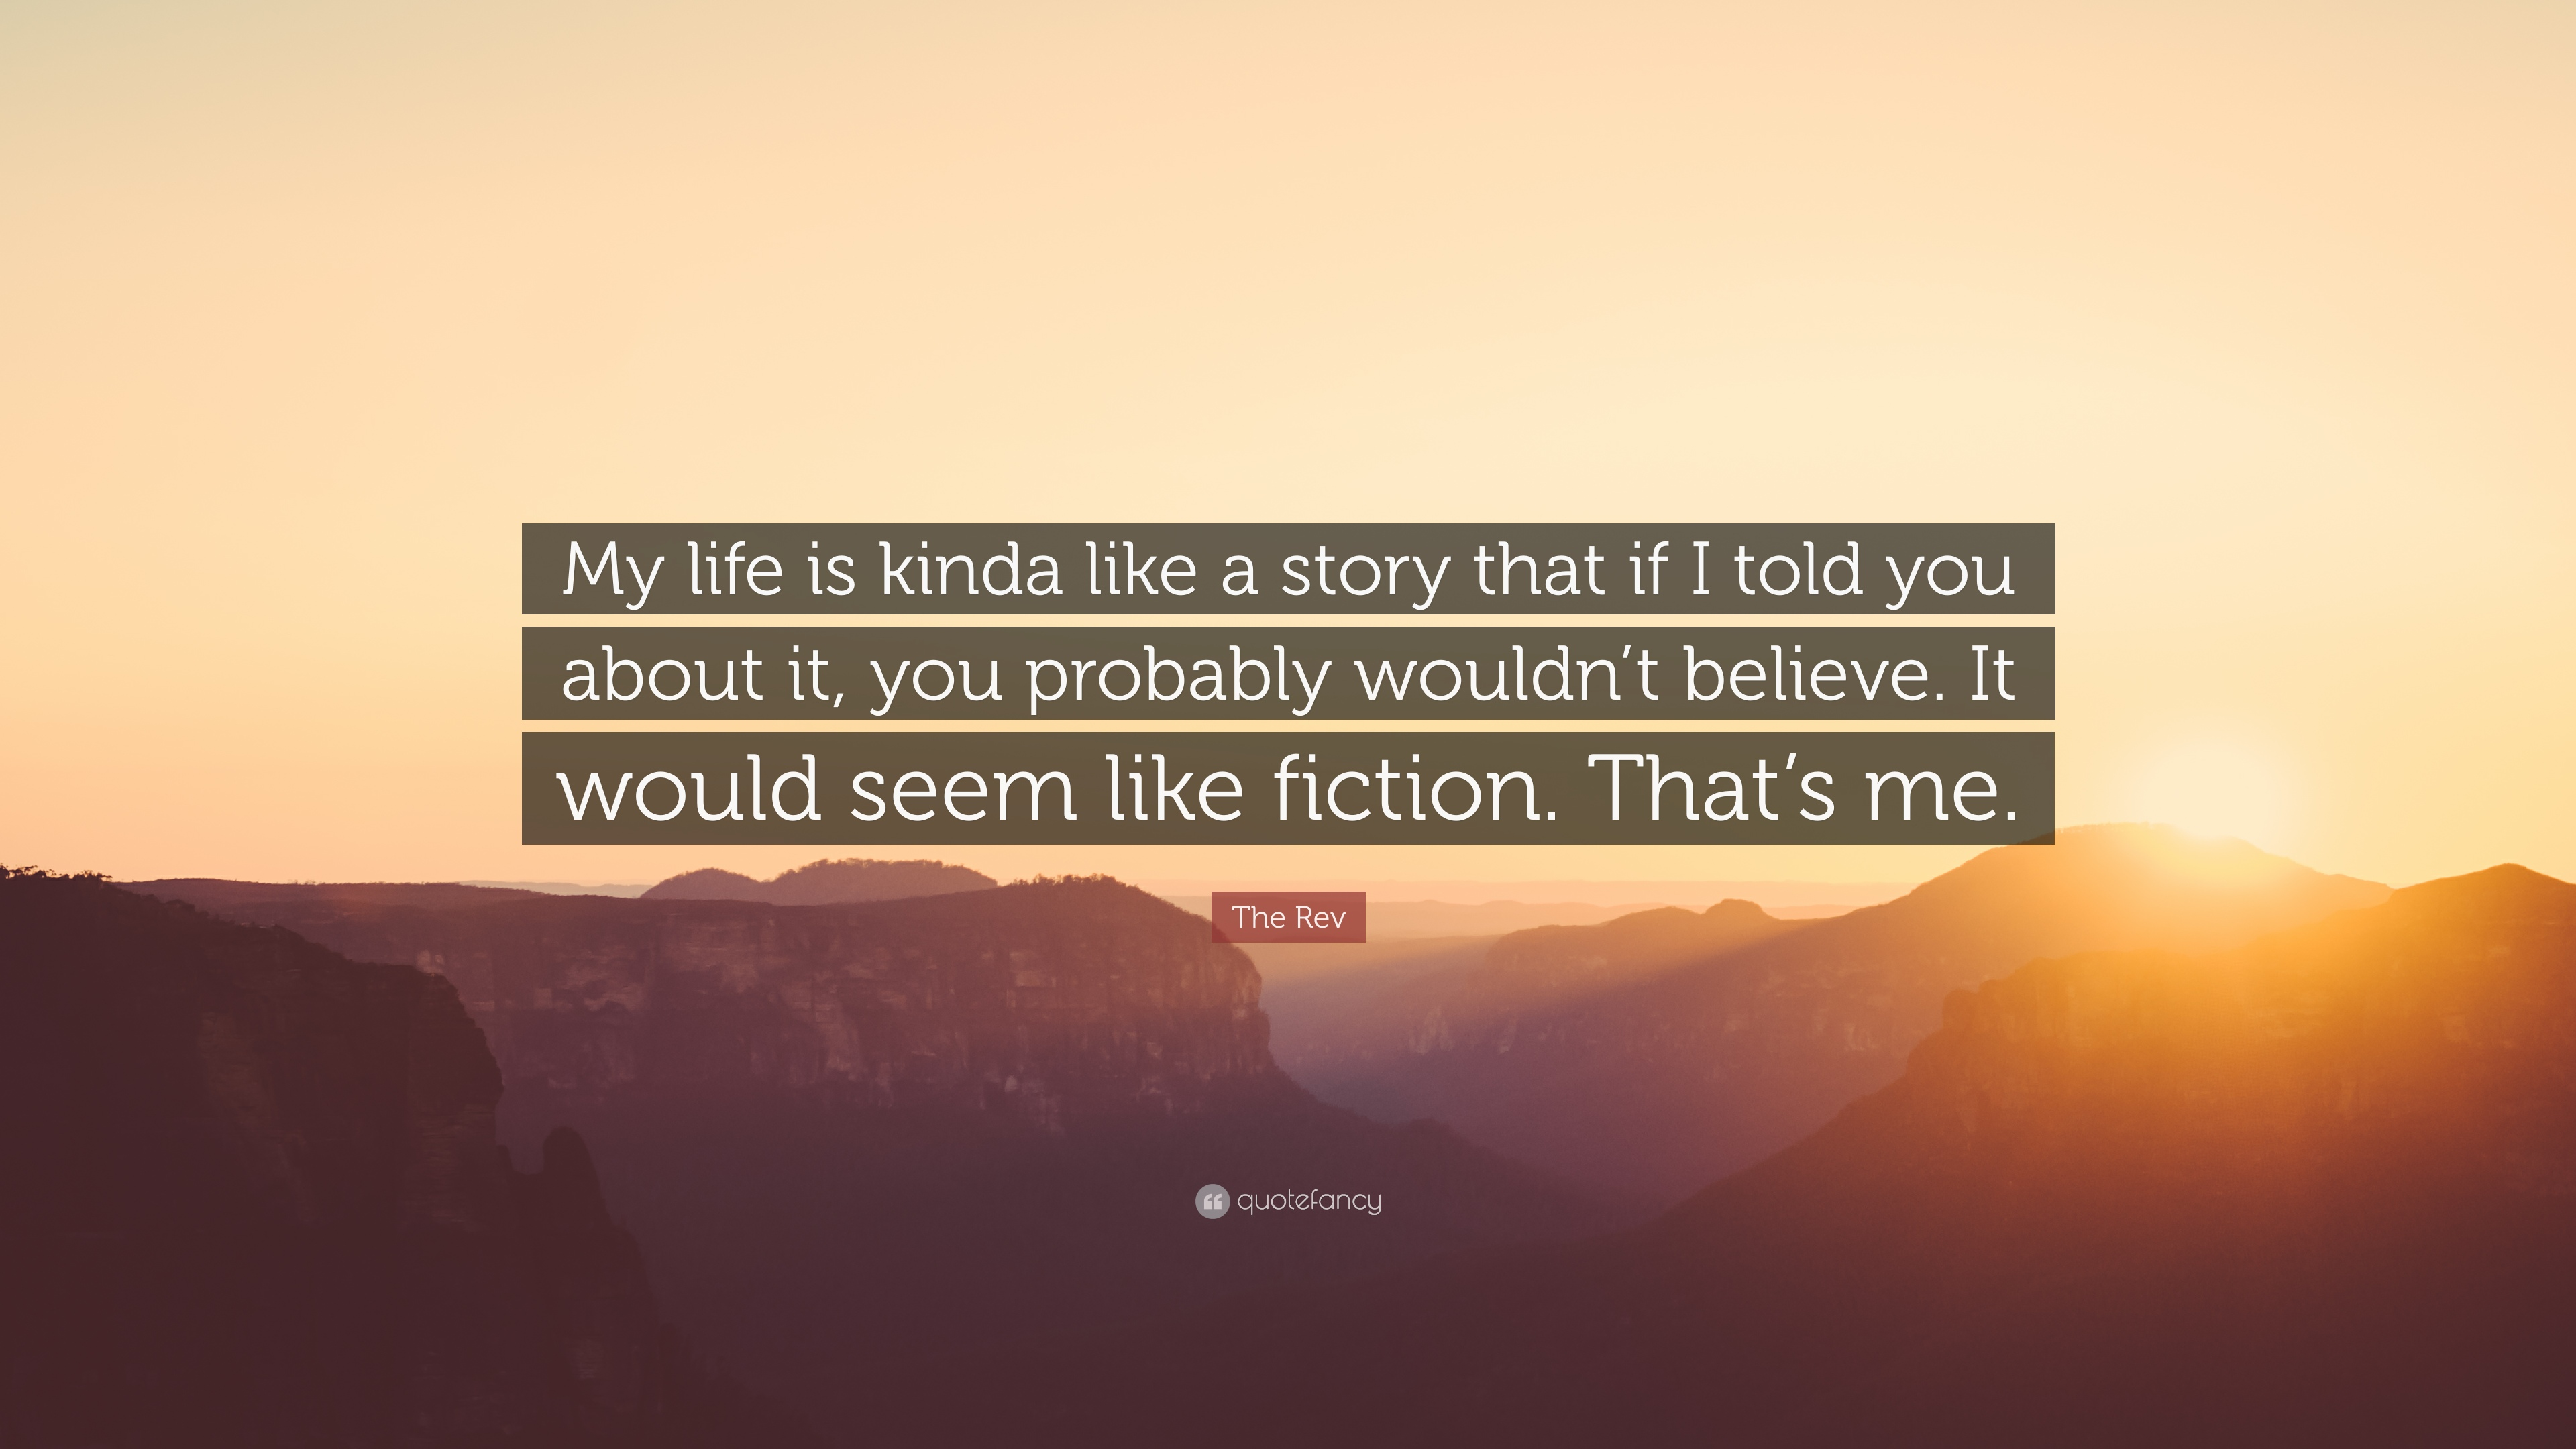 The Rev Quote My Life Is Kinda Like A Story That If I Told You